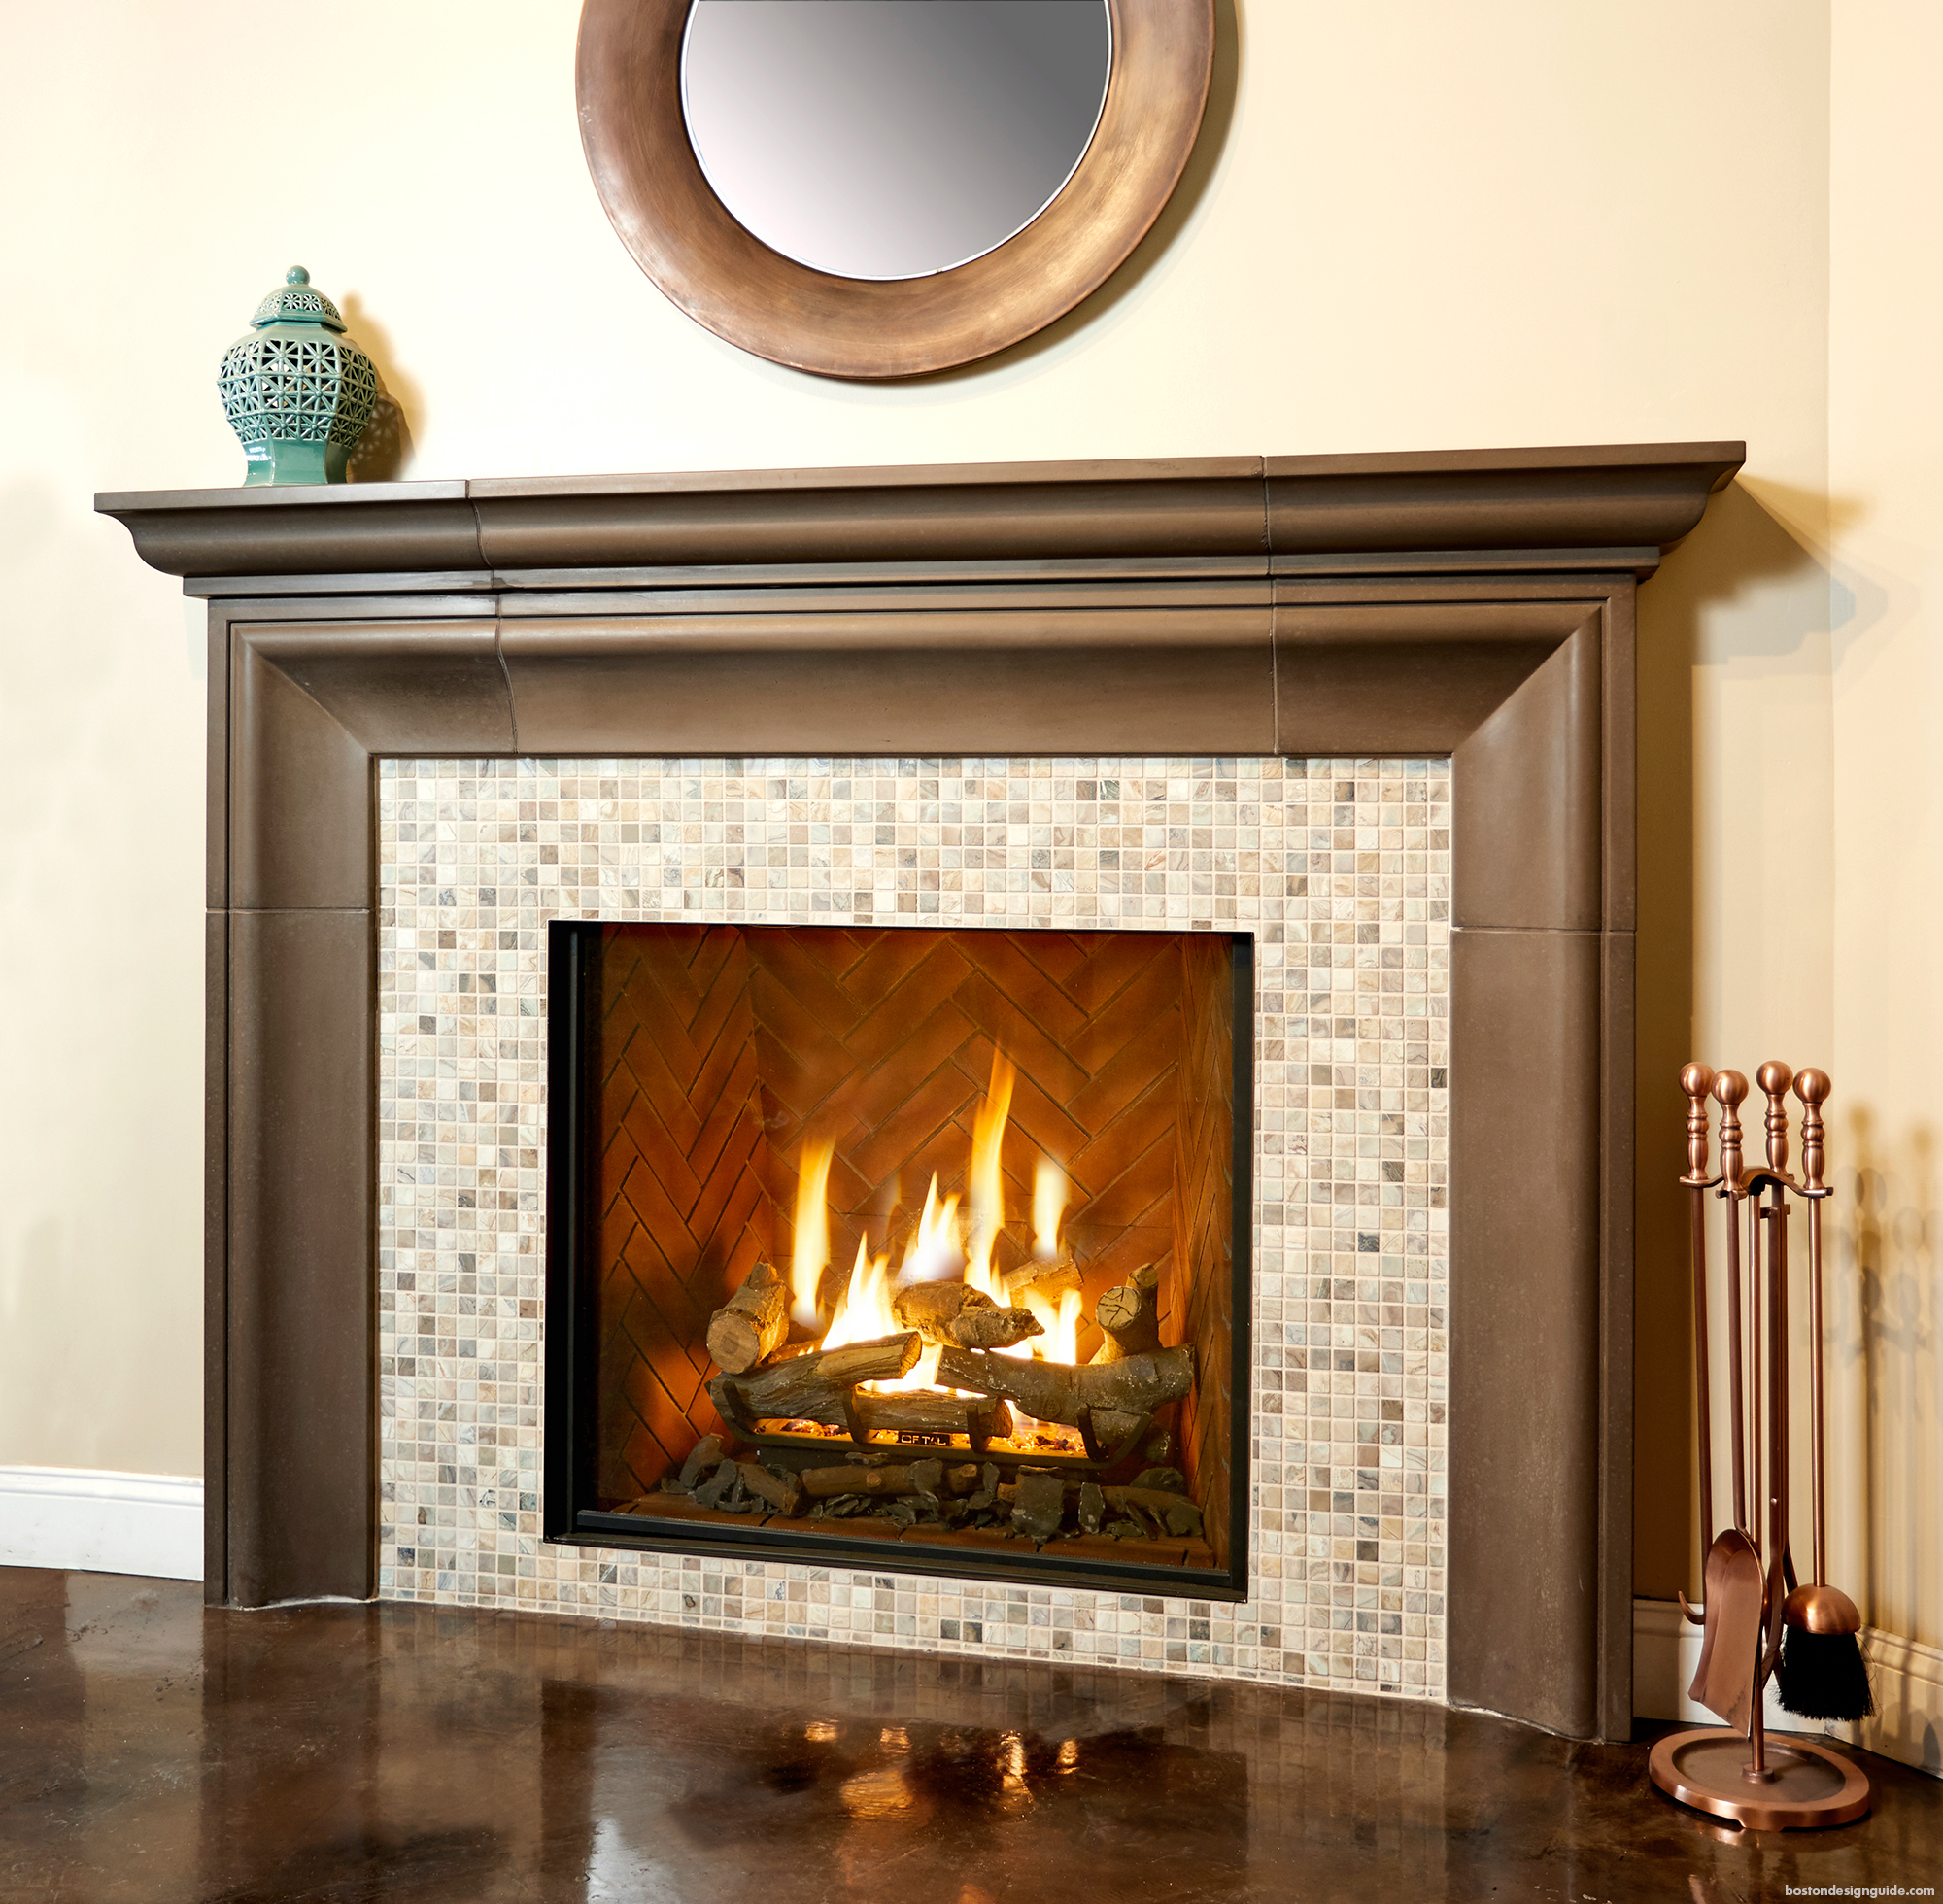 fl burner blk b product fireplace by en fire ethanol ecosmart firebox from digital inserts